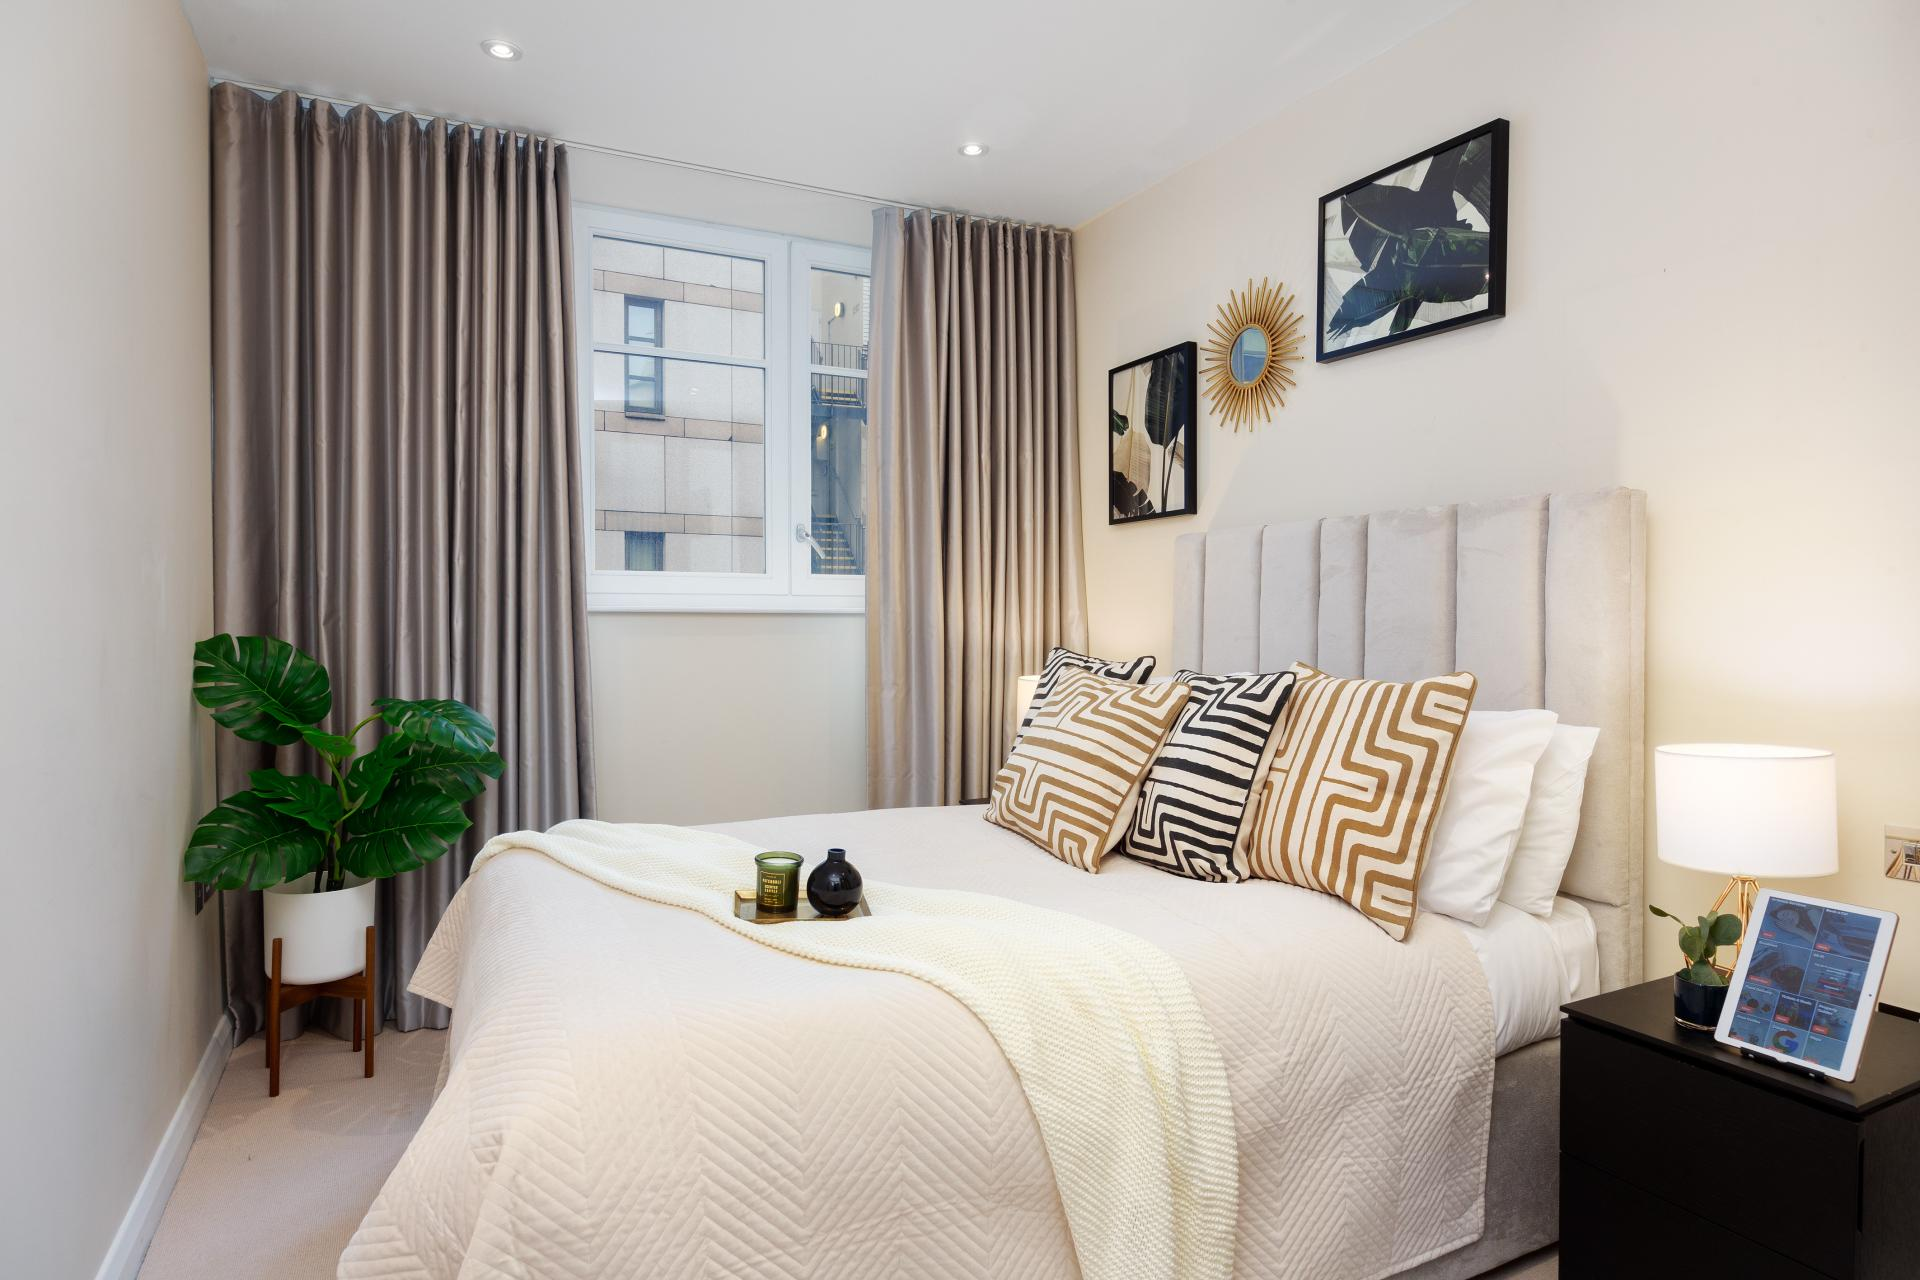 Bedroom at Chancery Lane Apartment, Chancery Lane, London - Citybase Apartments